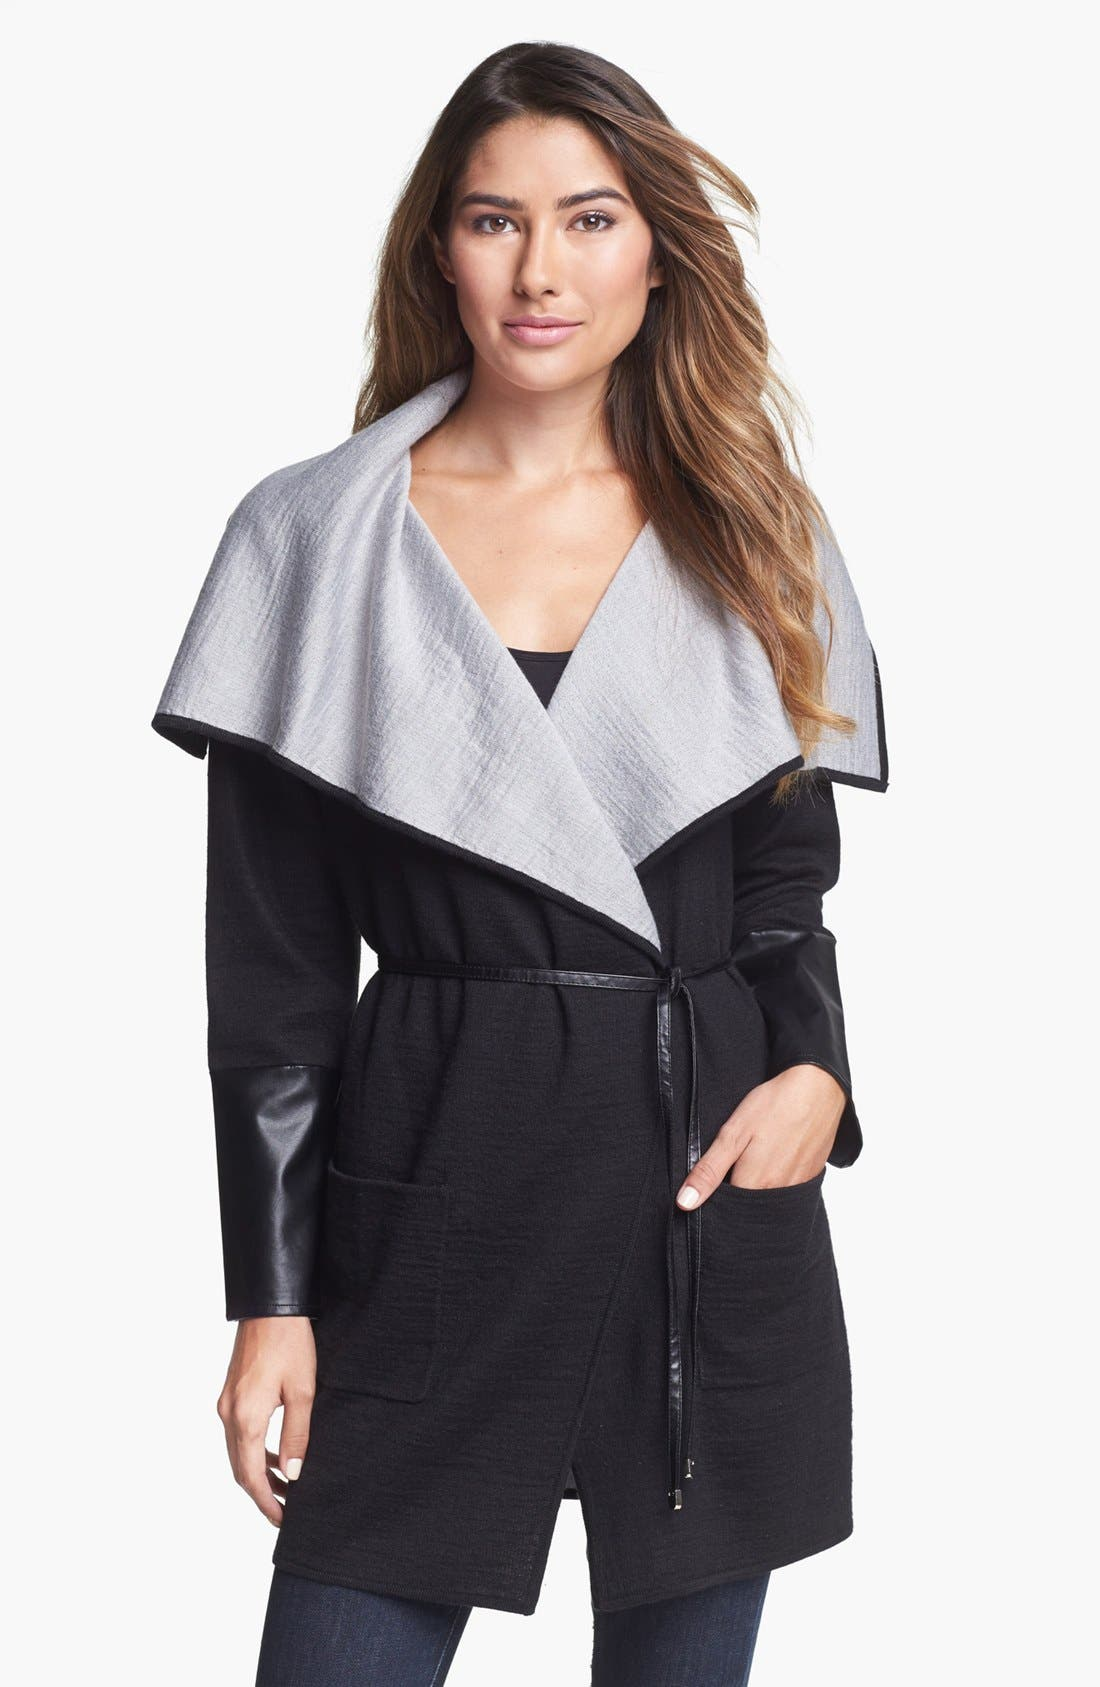 Alternate Image 1 Selected - Beatrix Ost Wrap Sweater with Belt